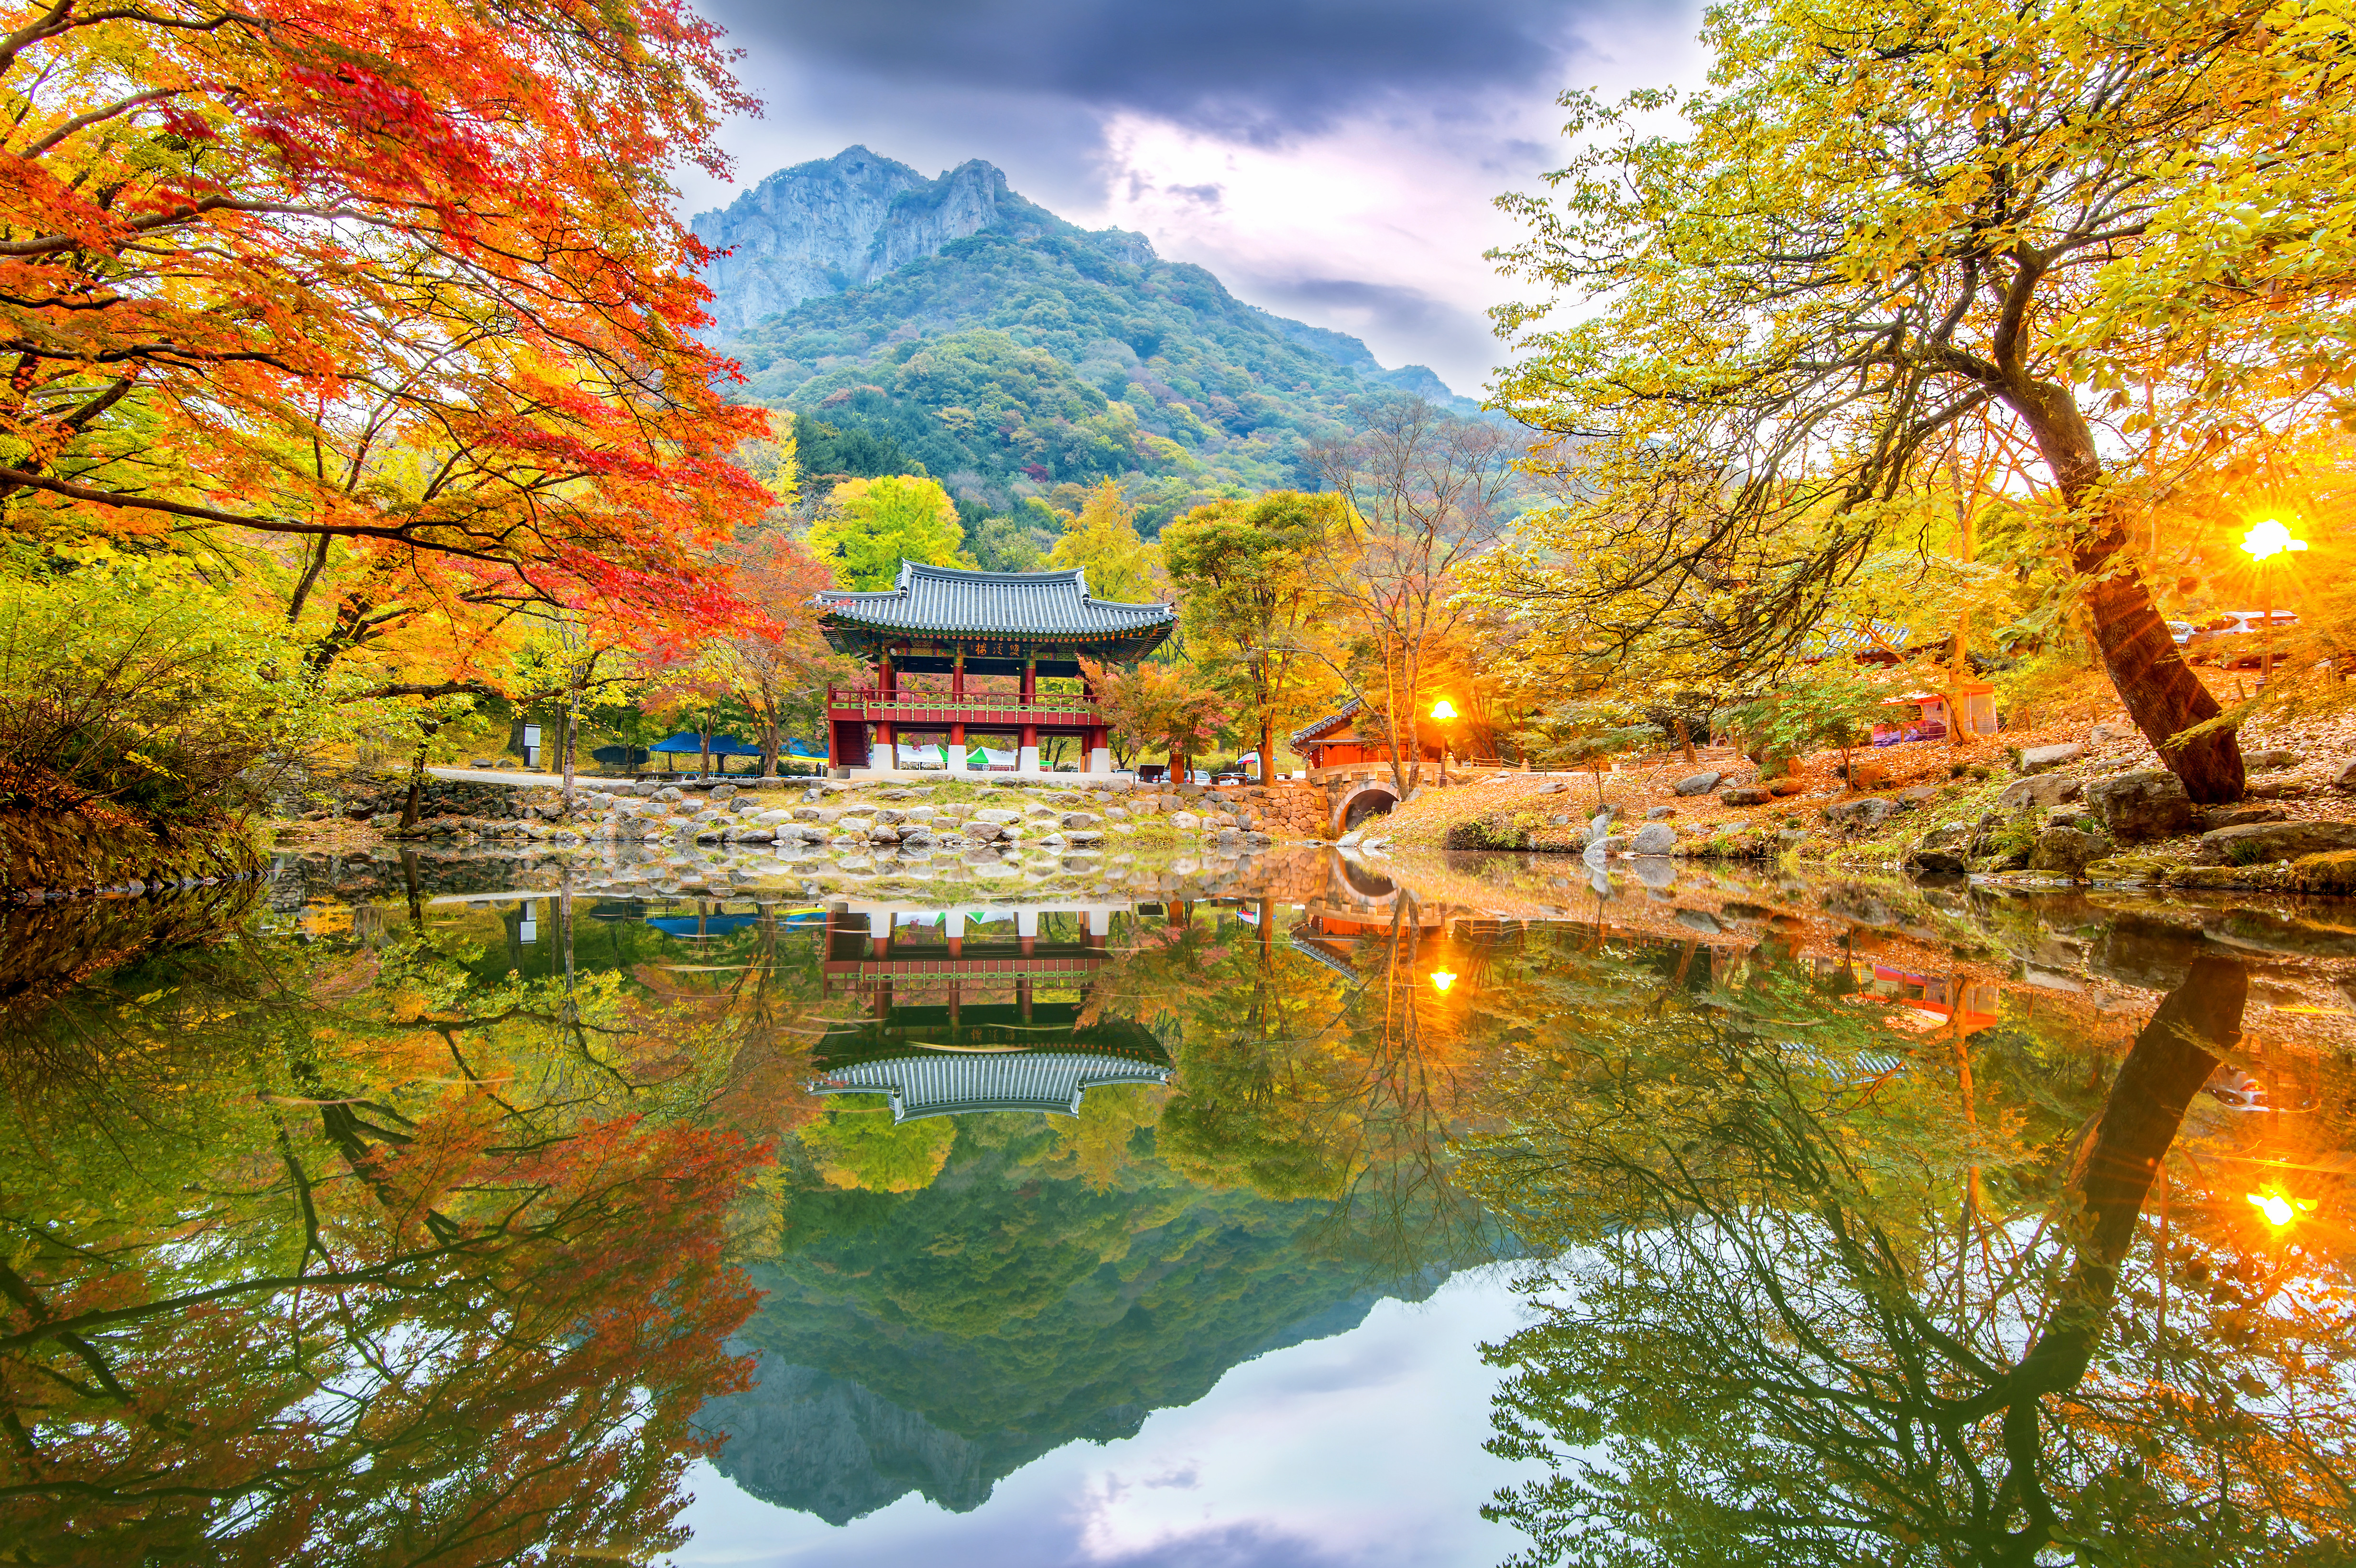 (Autumn) Magnificent Naejangsan National Park Foliage One Day Tour - Depart from Busan